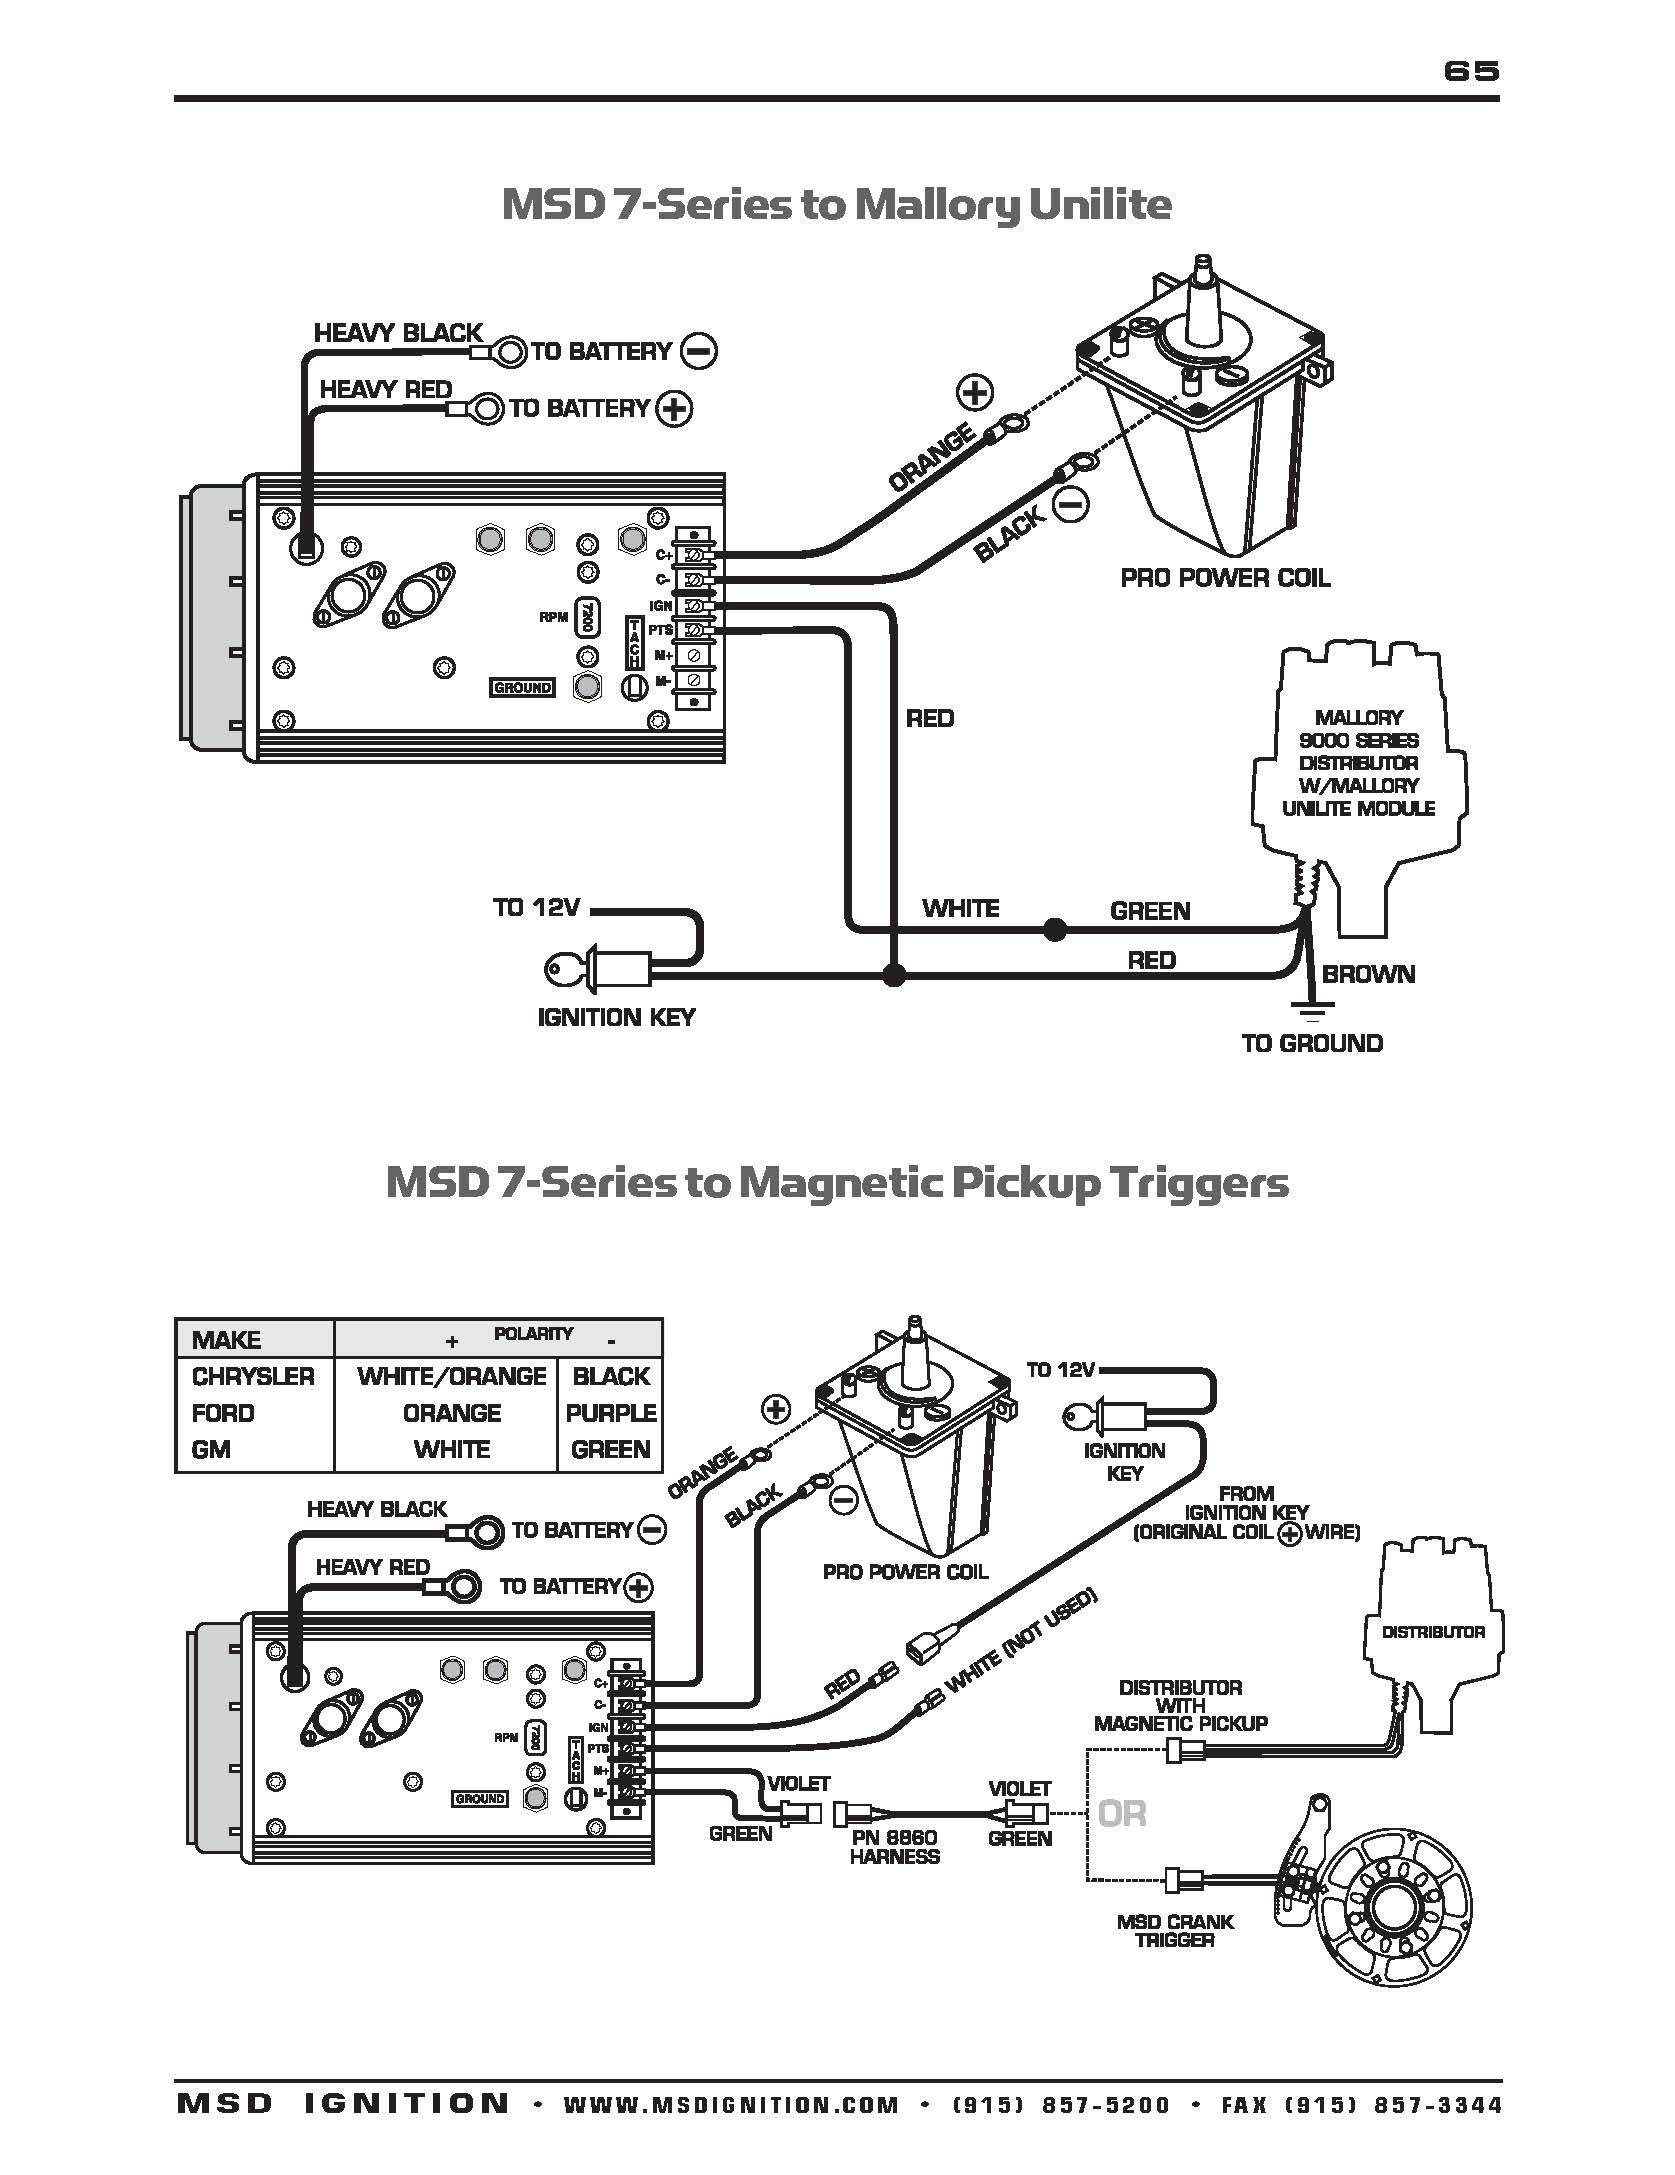 Msd Distributor Wiring Diagram Wdtn Pn9615 Page 064 Msd Distributor Wiring Diagram Of Msd Distributor Wiring Diagram